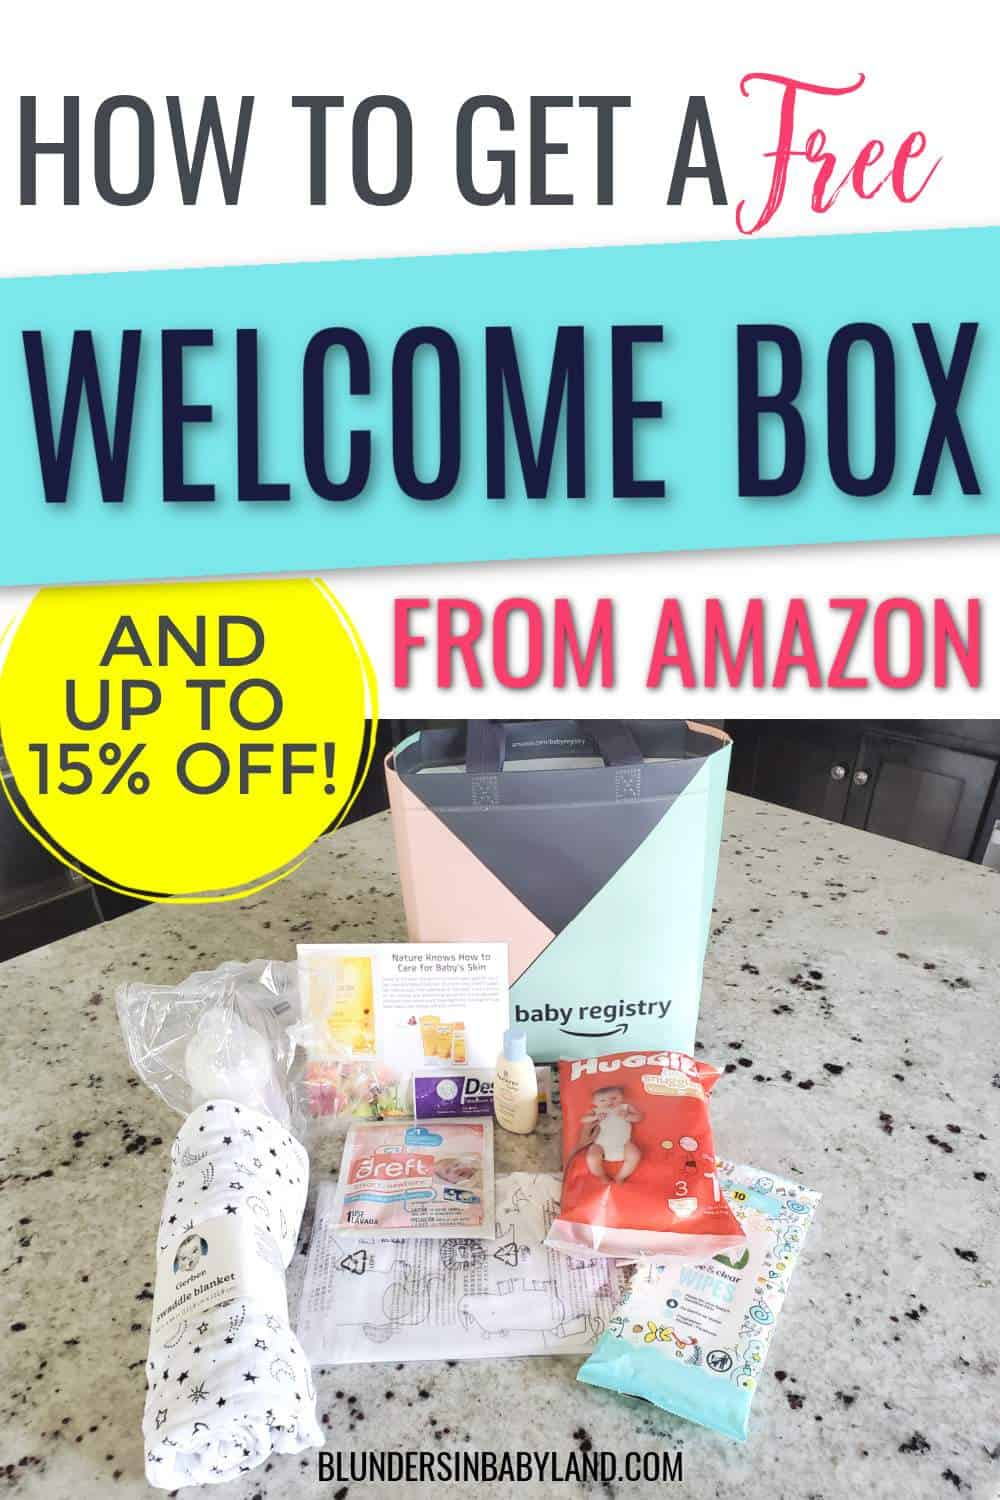 How to Get a Free Welcome Box from Amazon - Amazon Baby Registry Free Gift